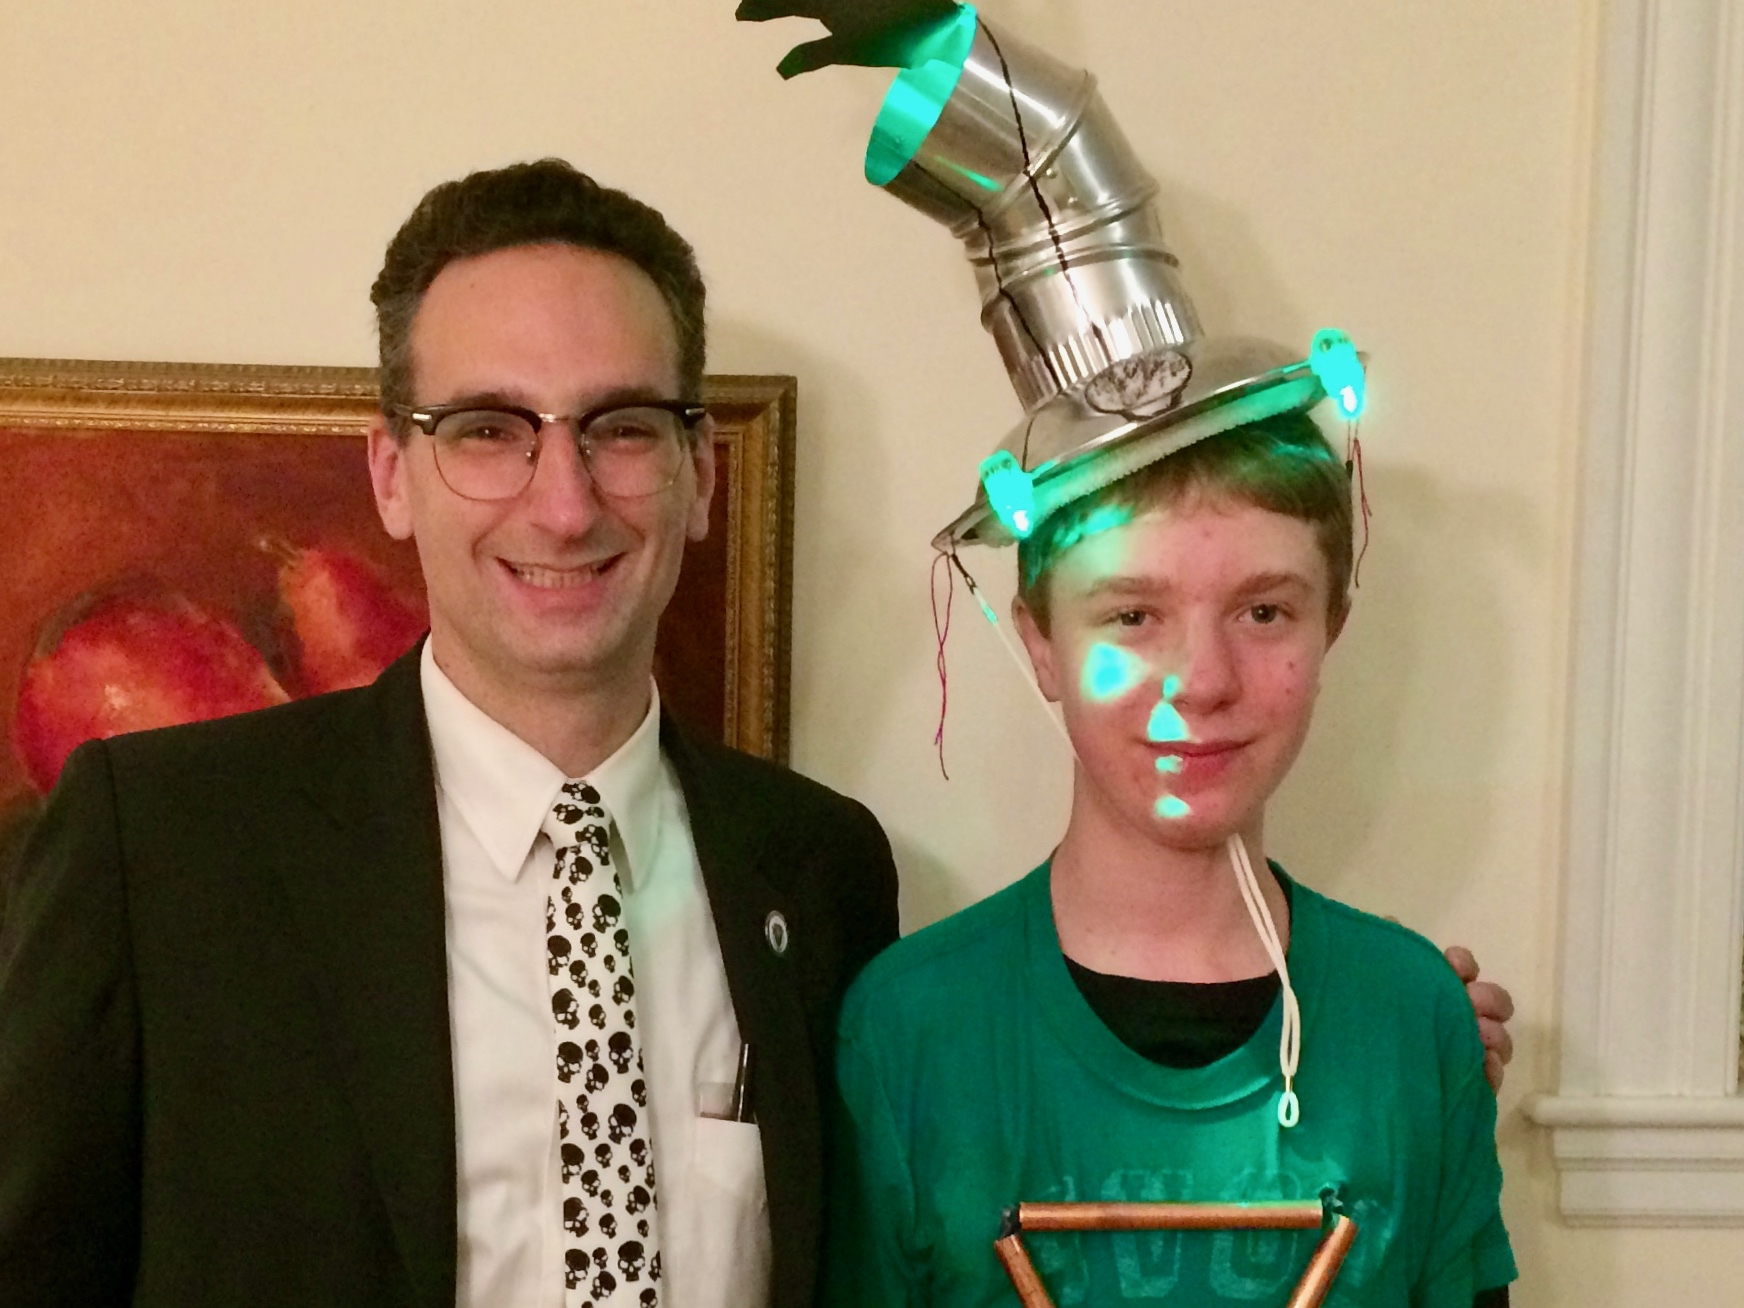 Tommy Vitolo with young man dressed as a gas leak for Halloween